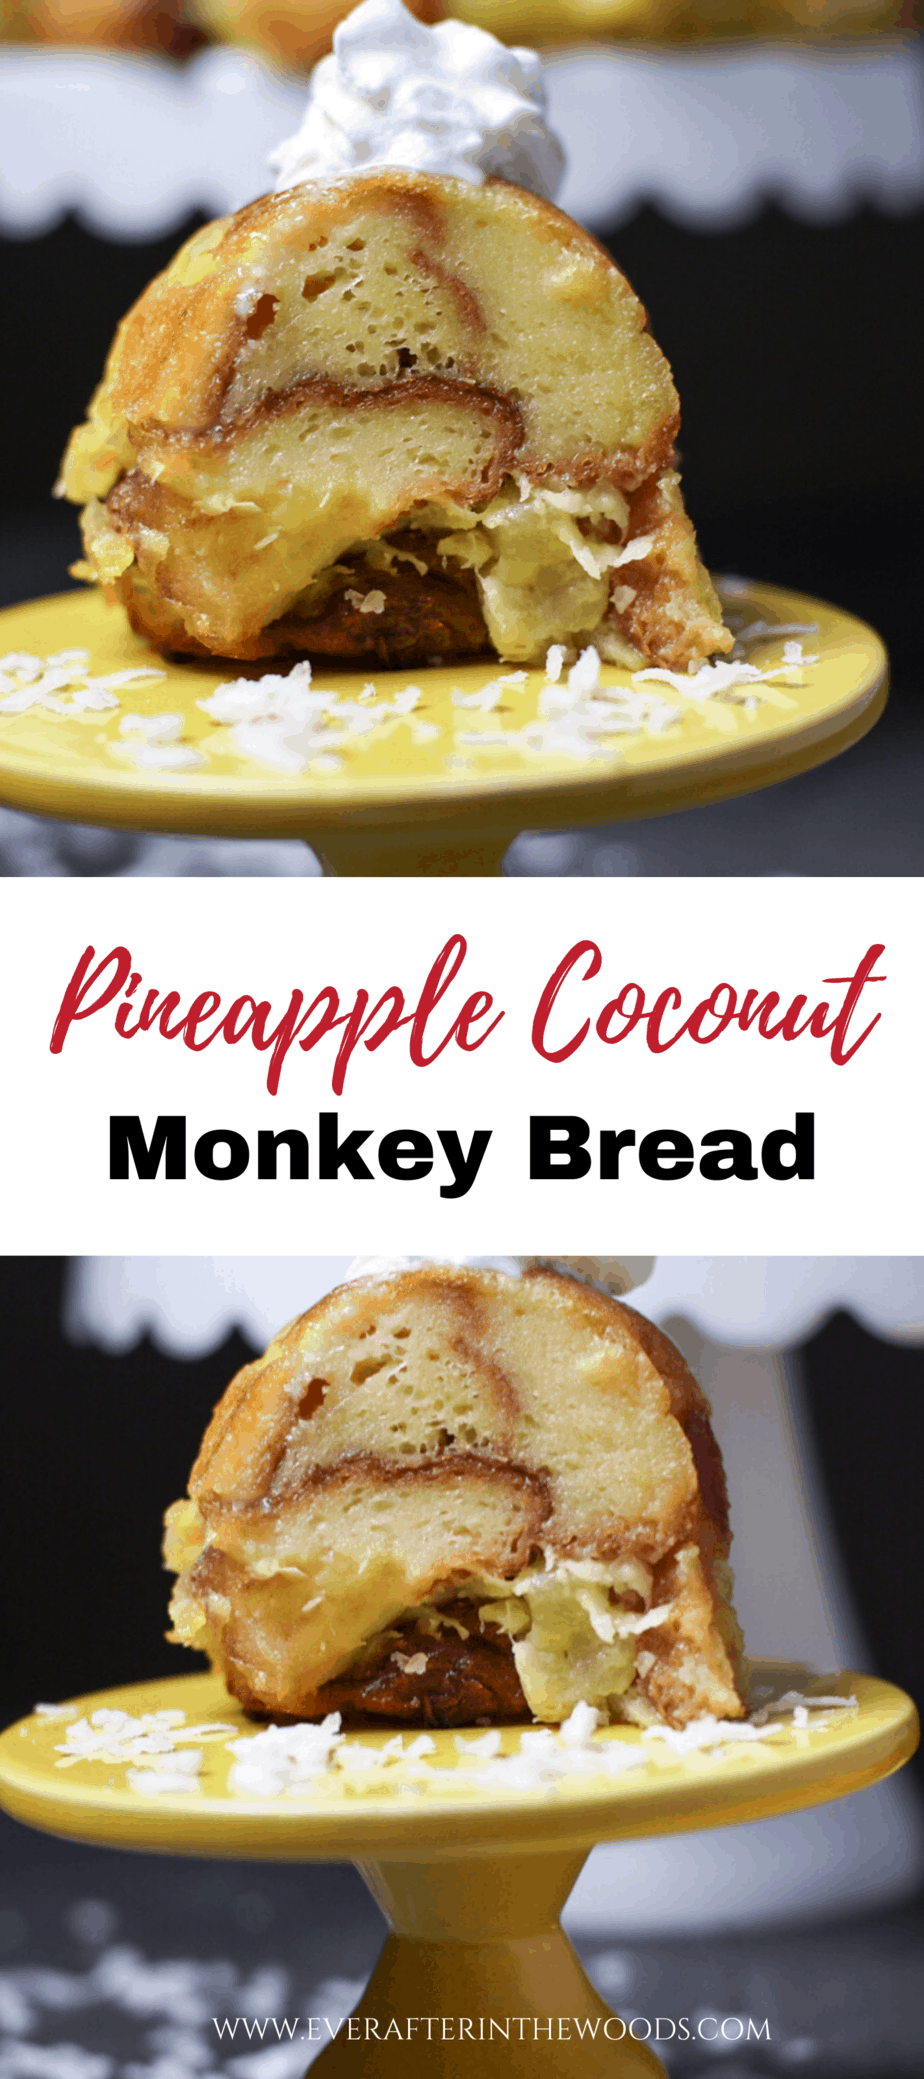 pina colada monkey bread with sweet rolls